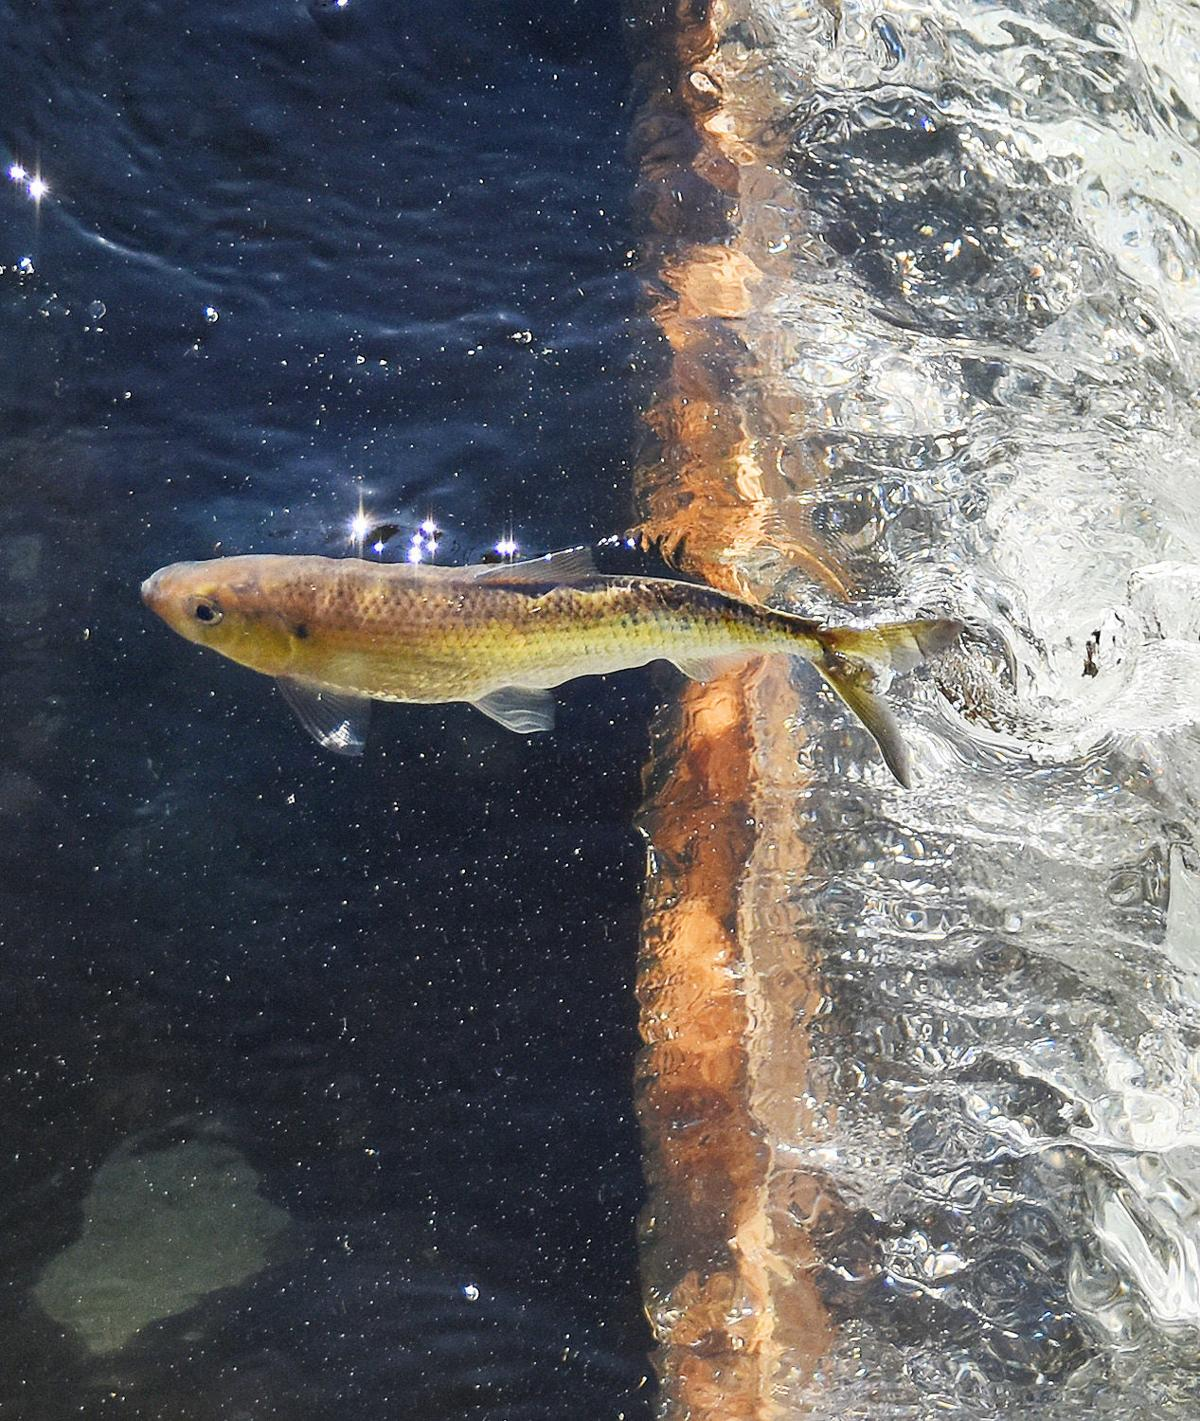 The Coonamessett River Trust Is Clearing The Way For Herring To Run